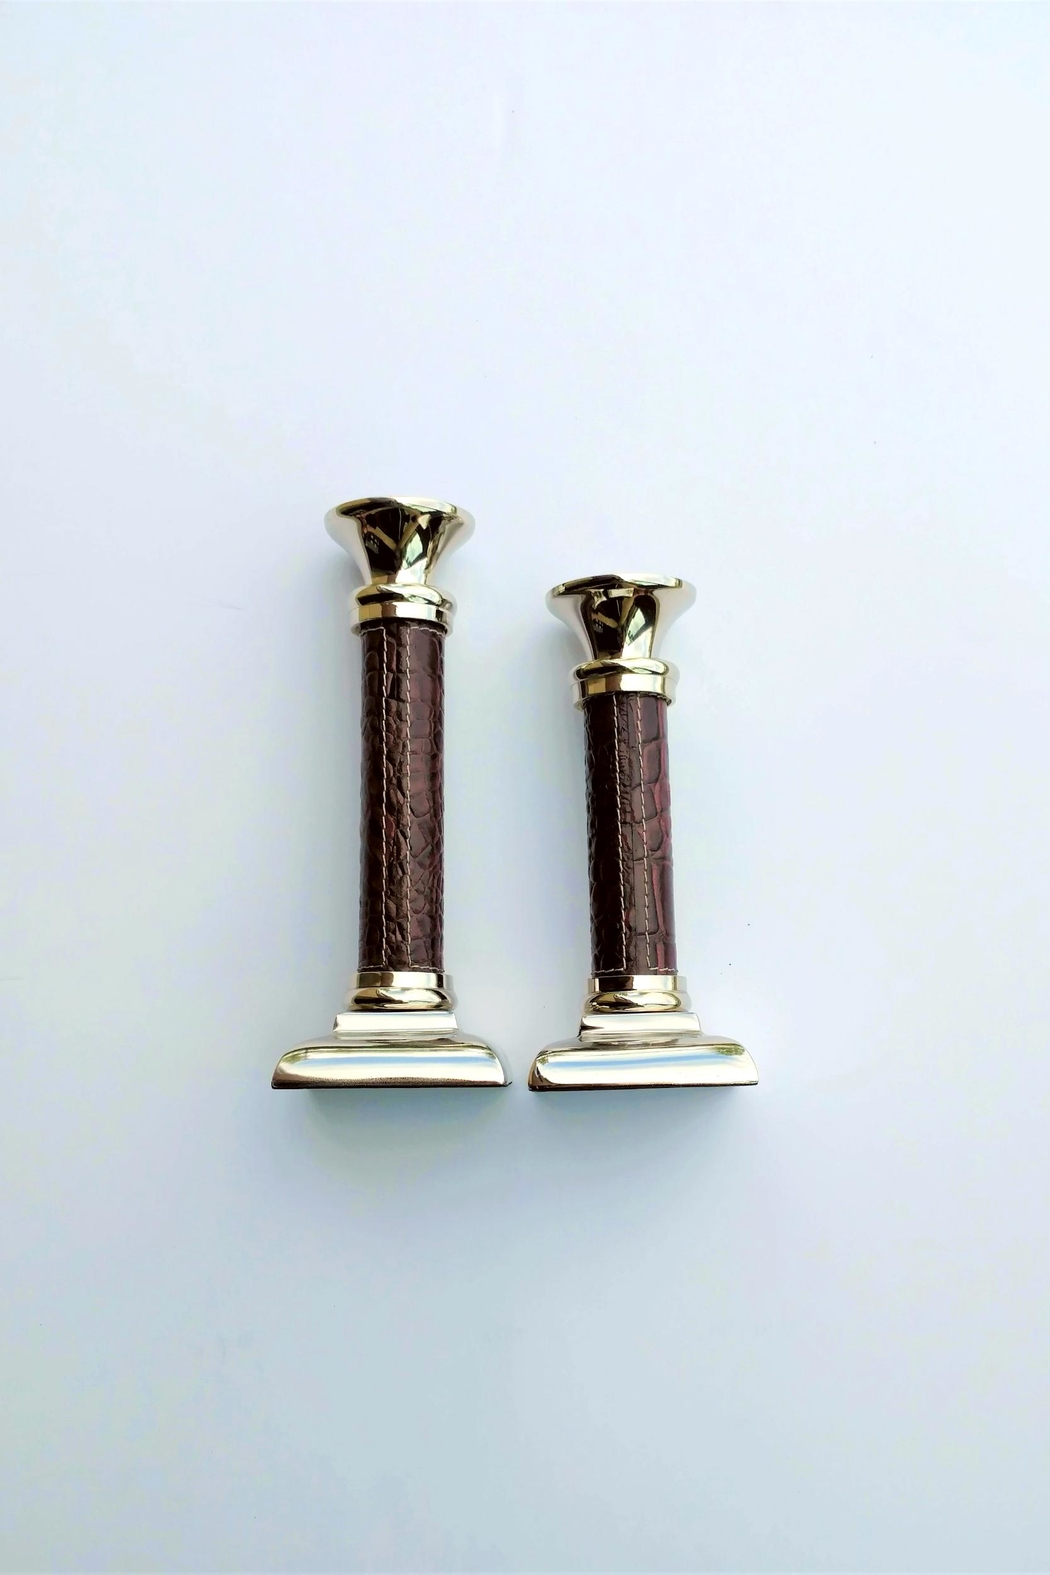 K&K Interiors Candlestick Leather Trim - Main Image